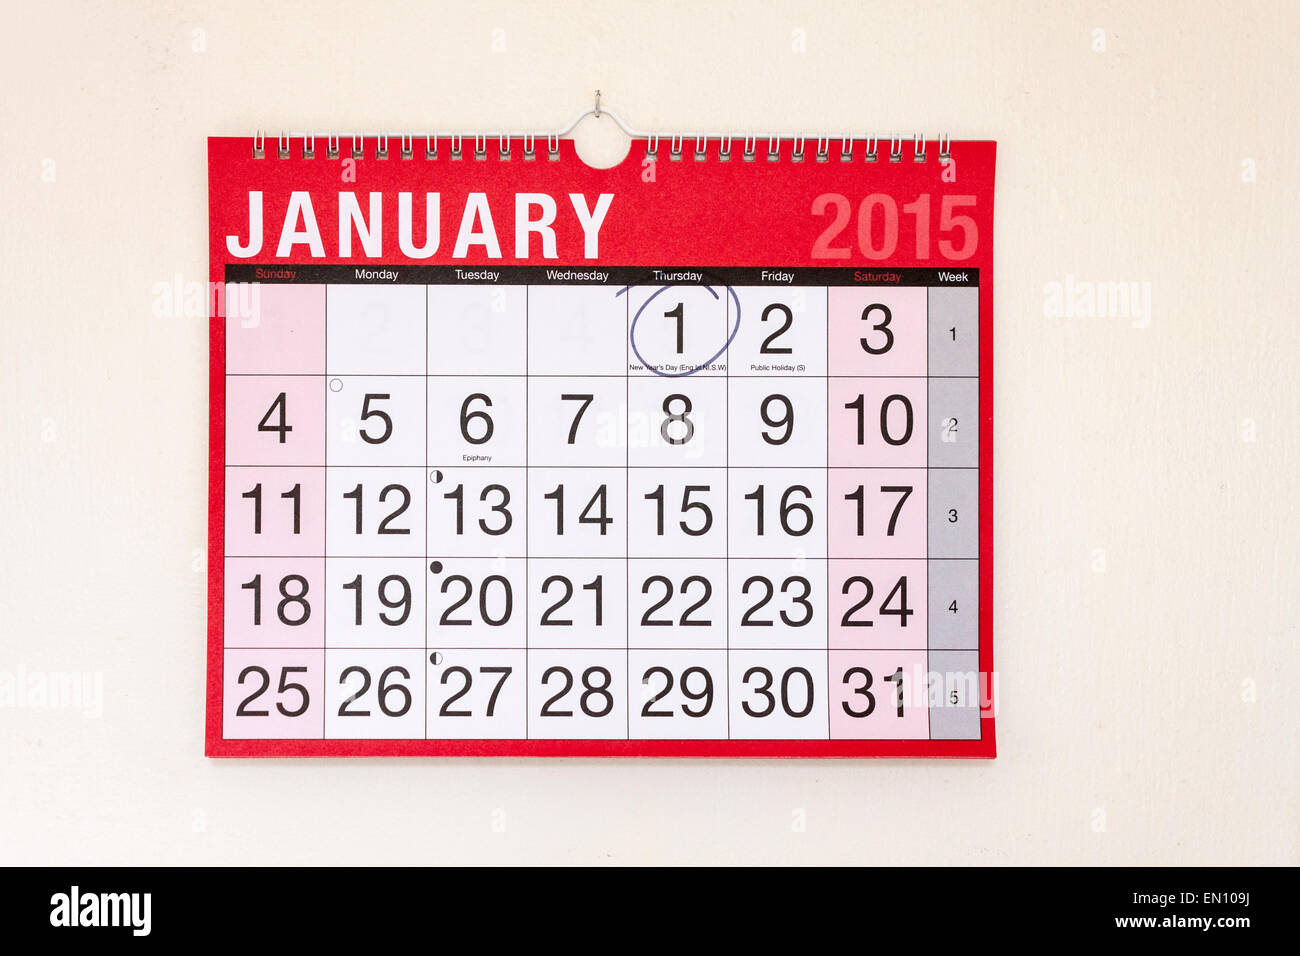 Monthly wall calendar January 2015, New Year's Day circled - Stock Image